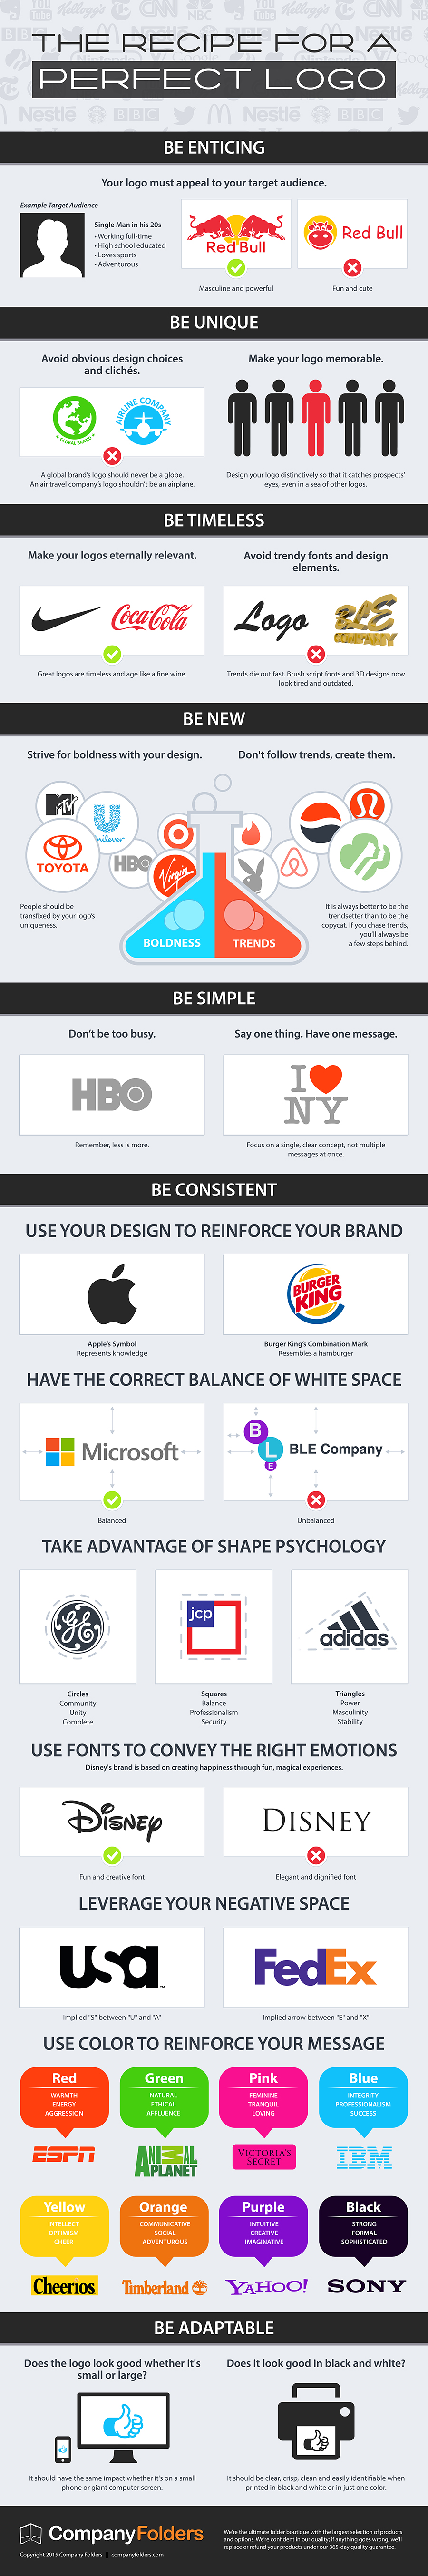 How to Design the Perfect Business Logo #Infographic